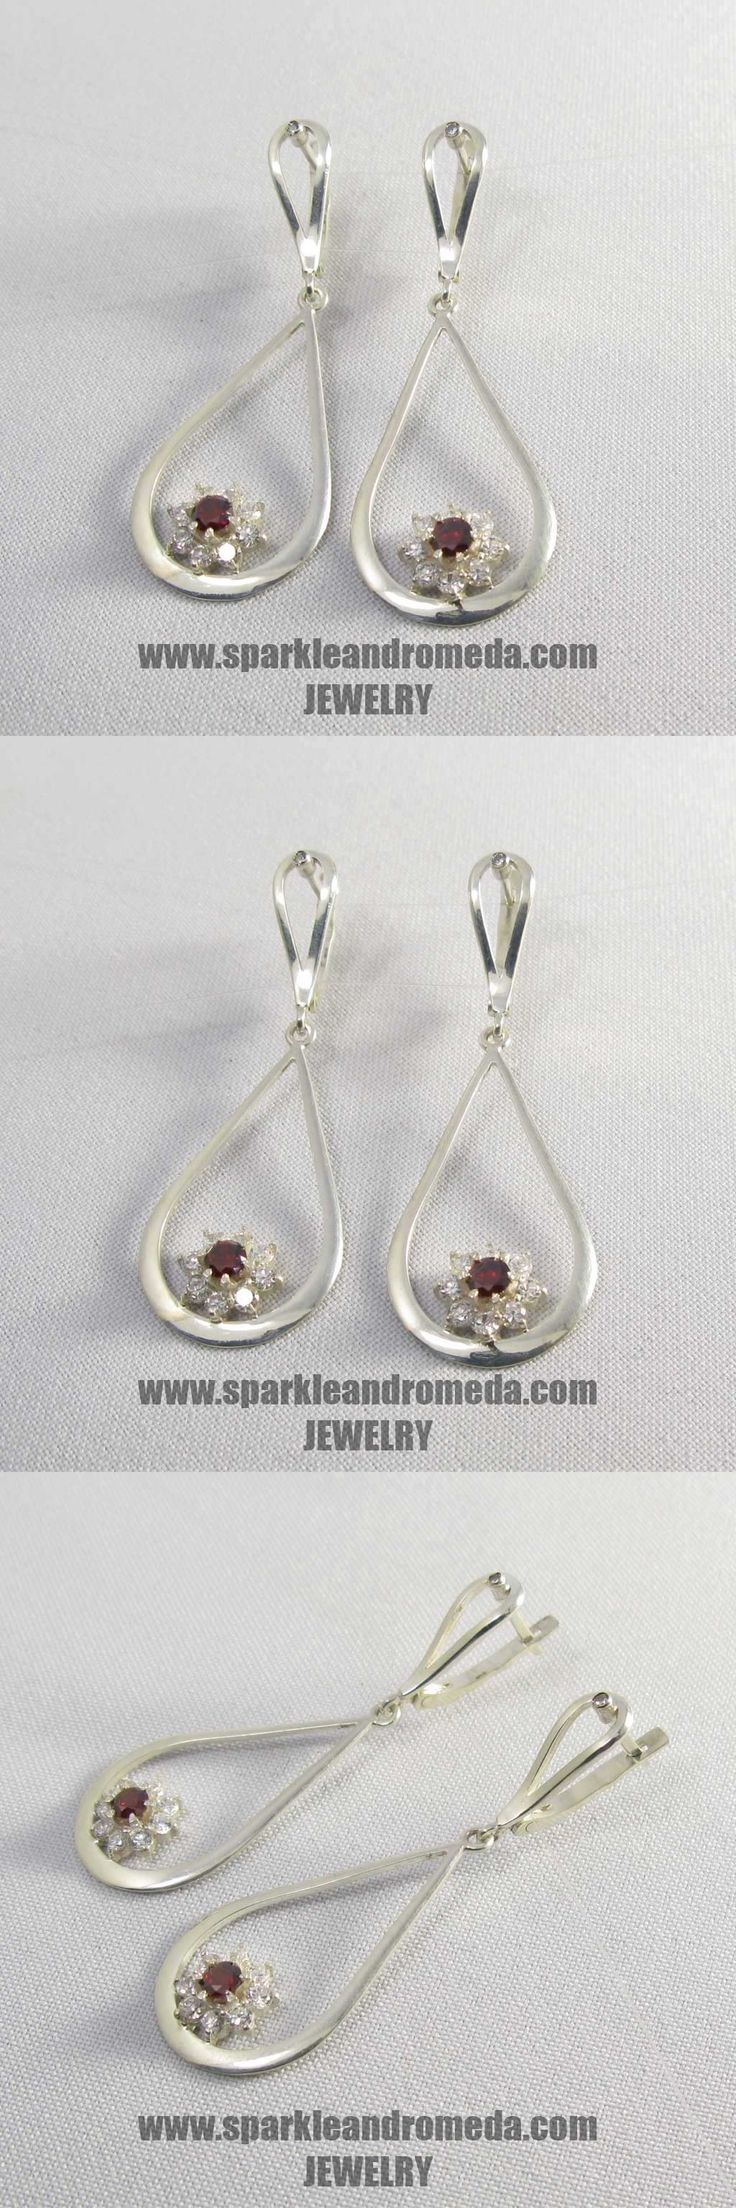 Sterling 925 silver earrings with 2 round 4 mm red almandine color and 16 round 3 mm and 2 round 2 mm white color cubic zirconia gemstones.